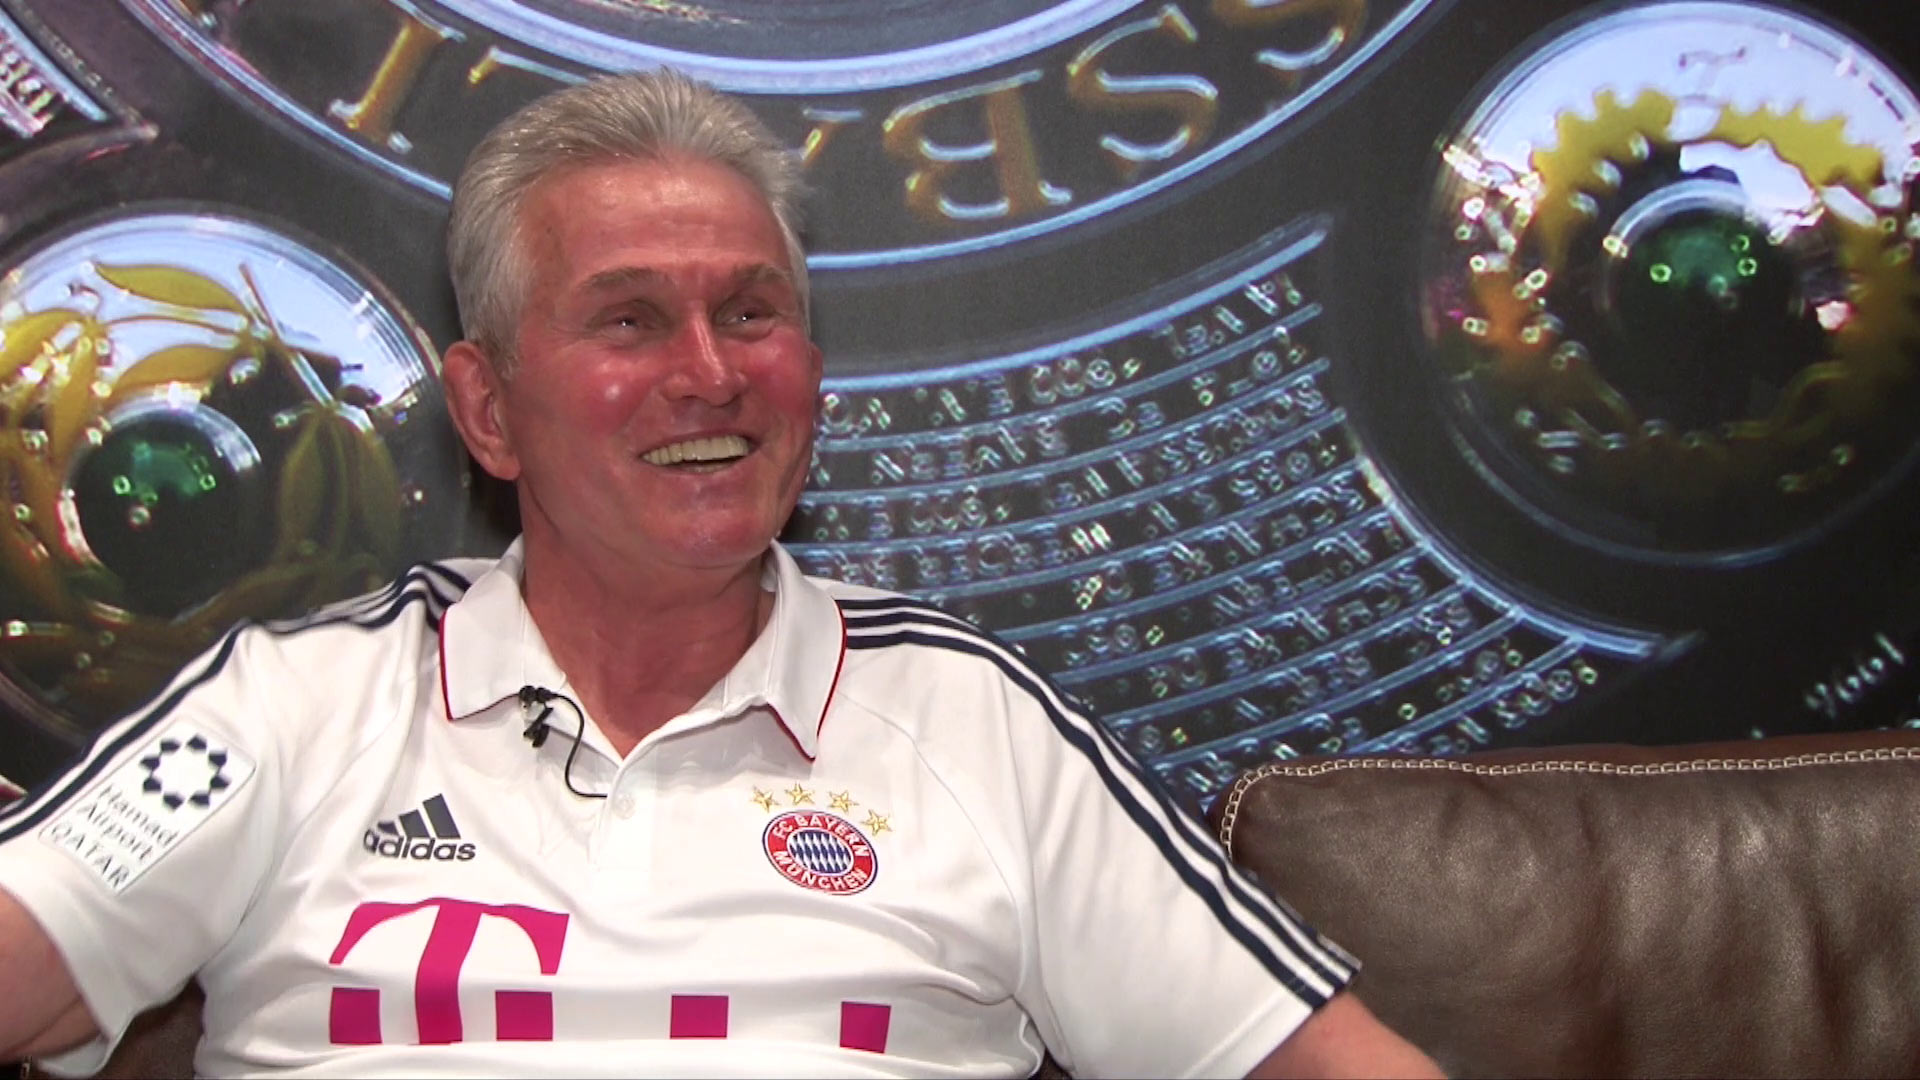 Jupp Heynckes exclusive